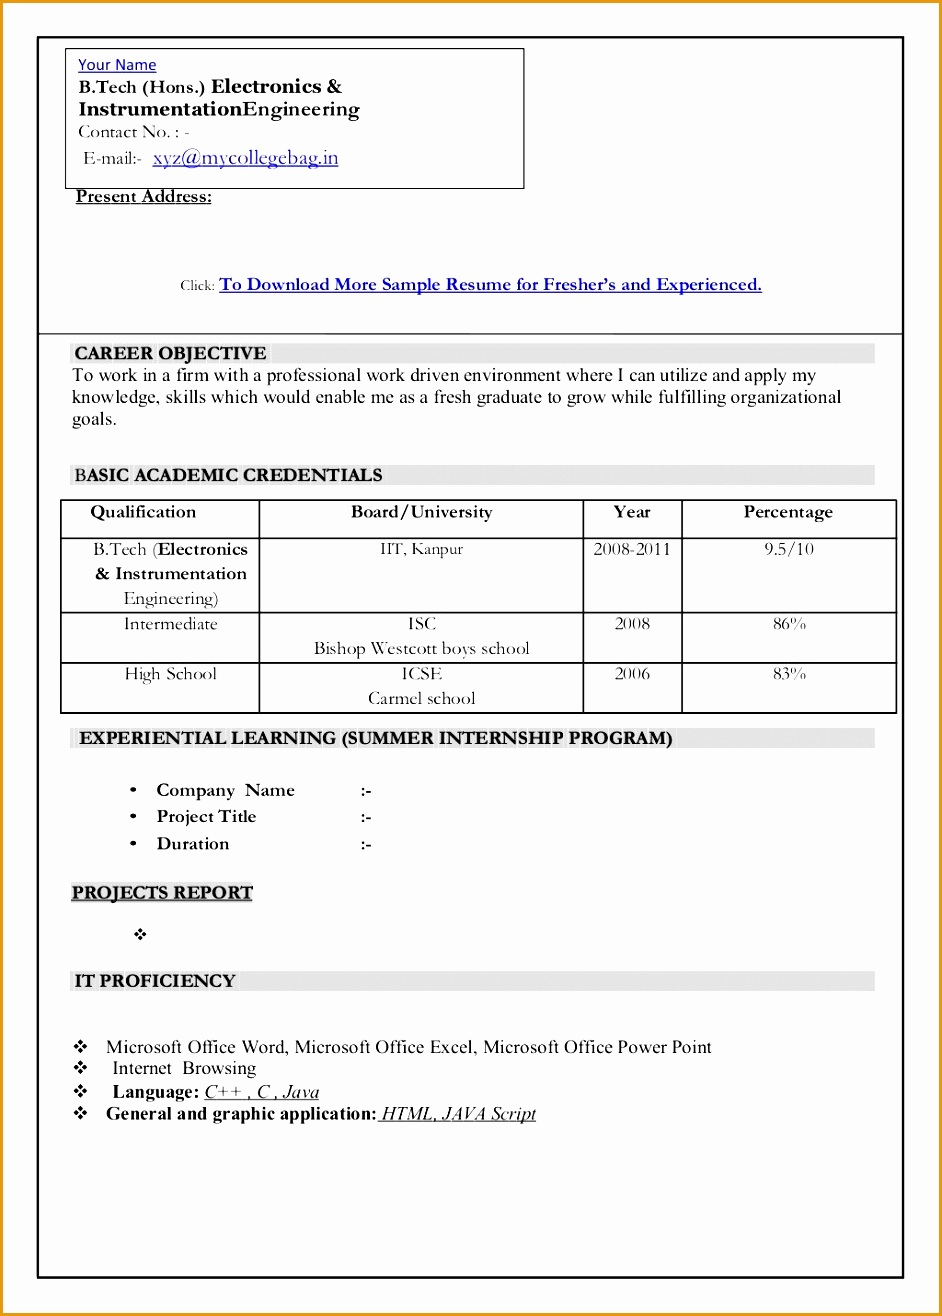 New Resume Format For Freshers1316942